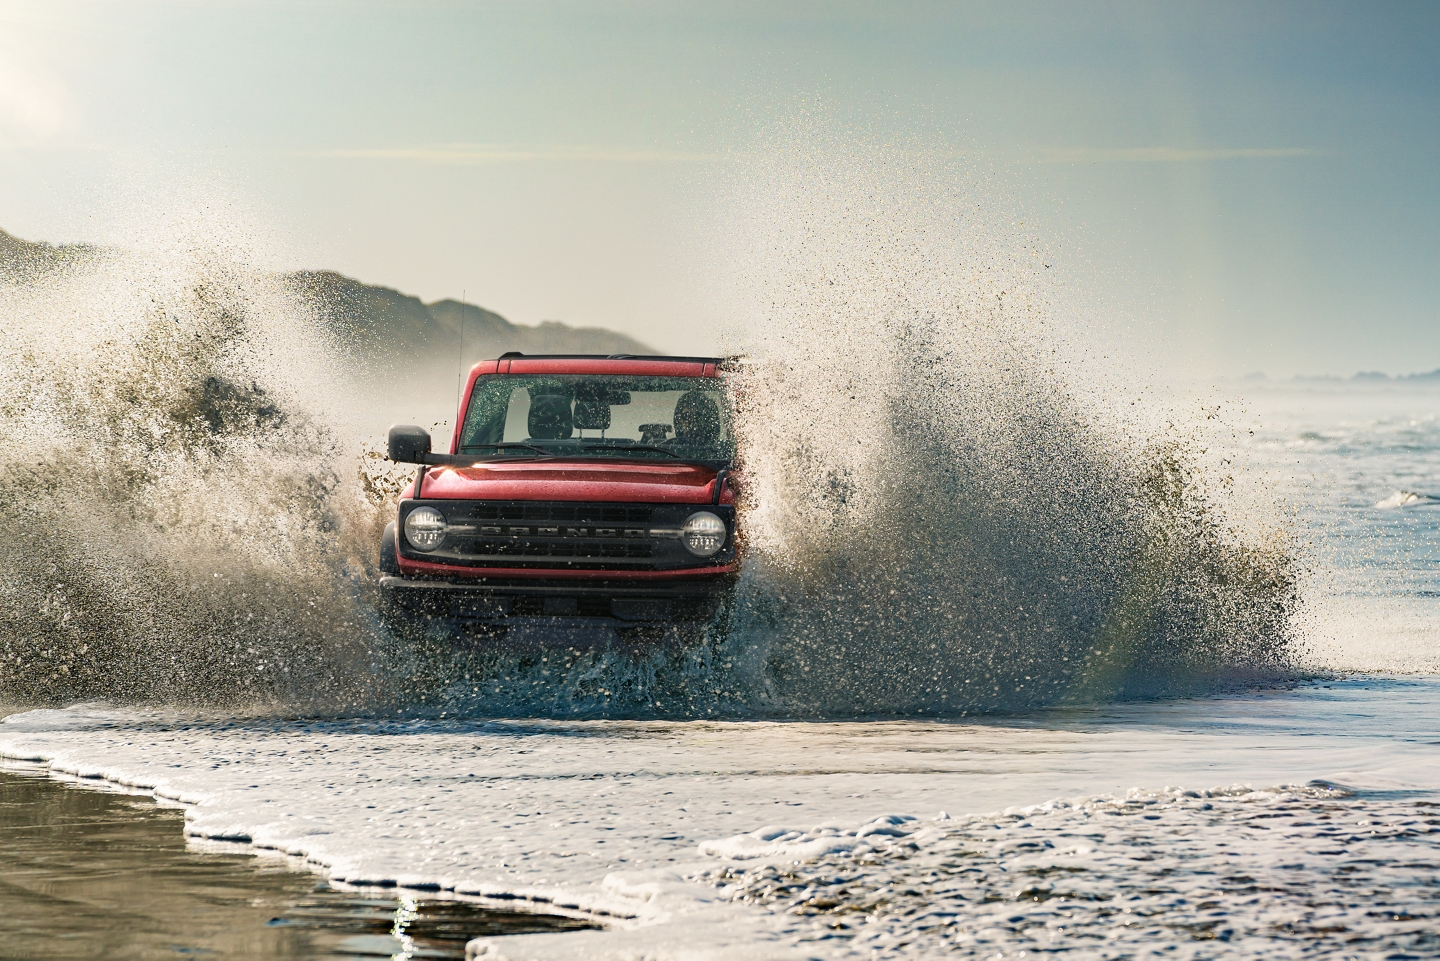 2021 Ford Bronco being driven by the water